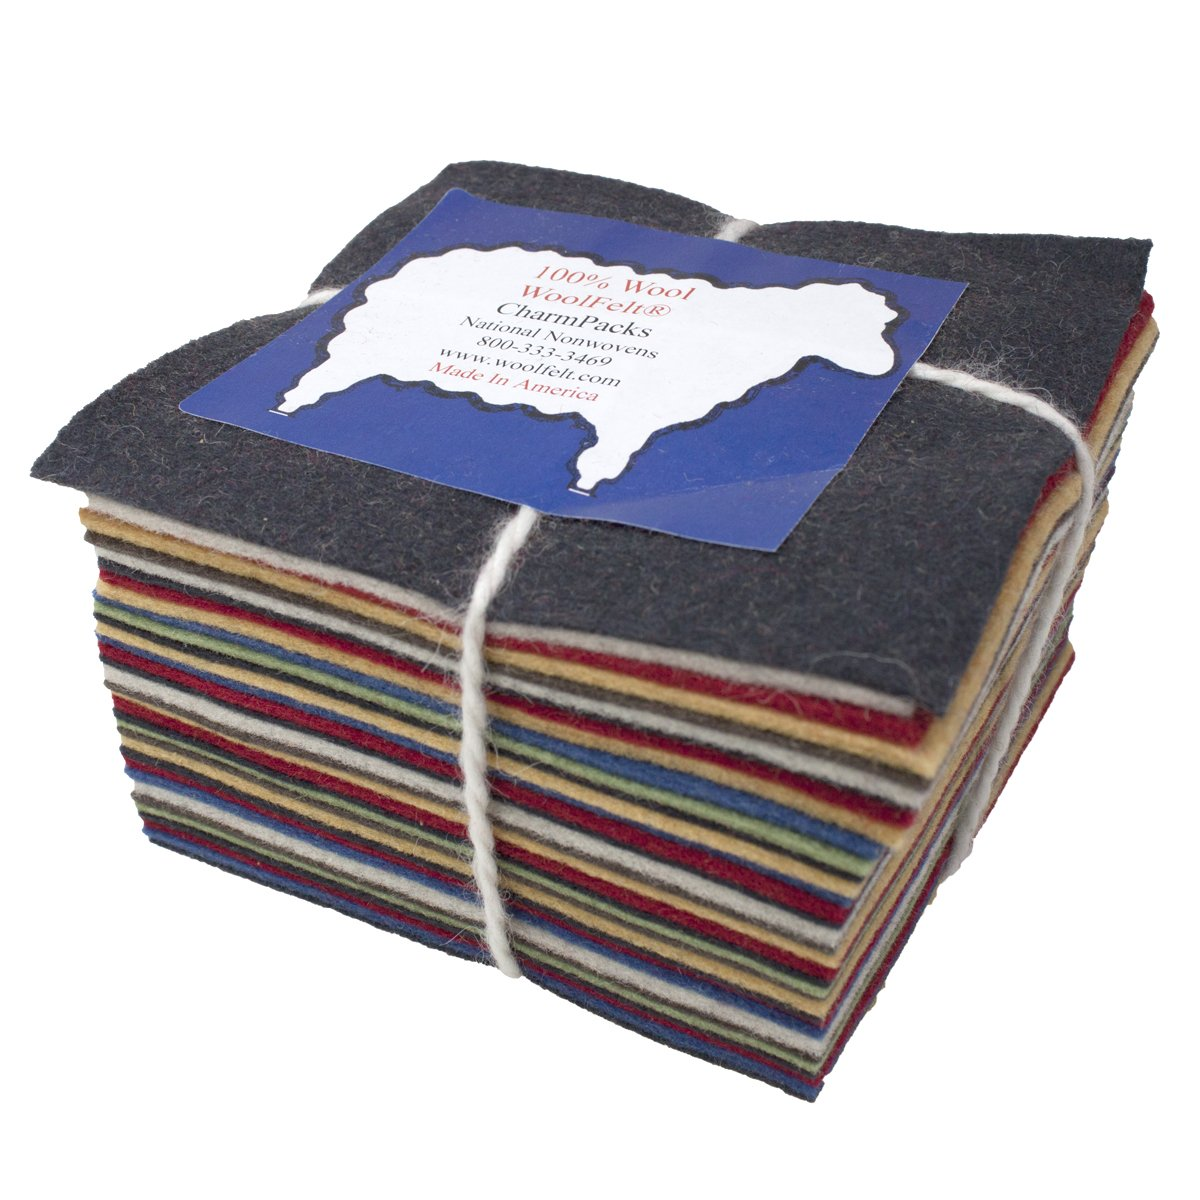 30 5 Squares 100% Wool Felt Americana Colors Charm Pack National Nonwovens 4336995644